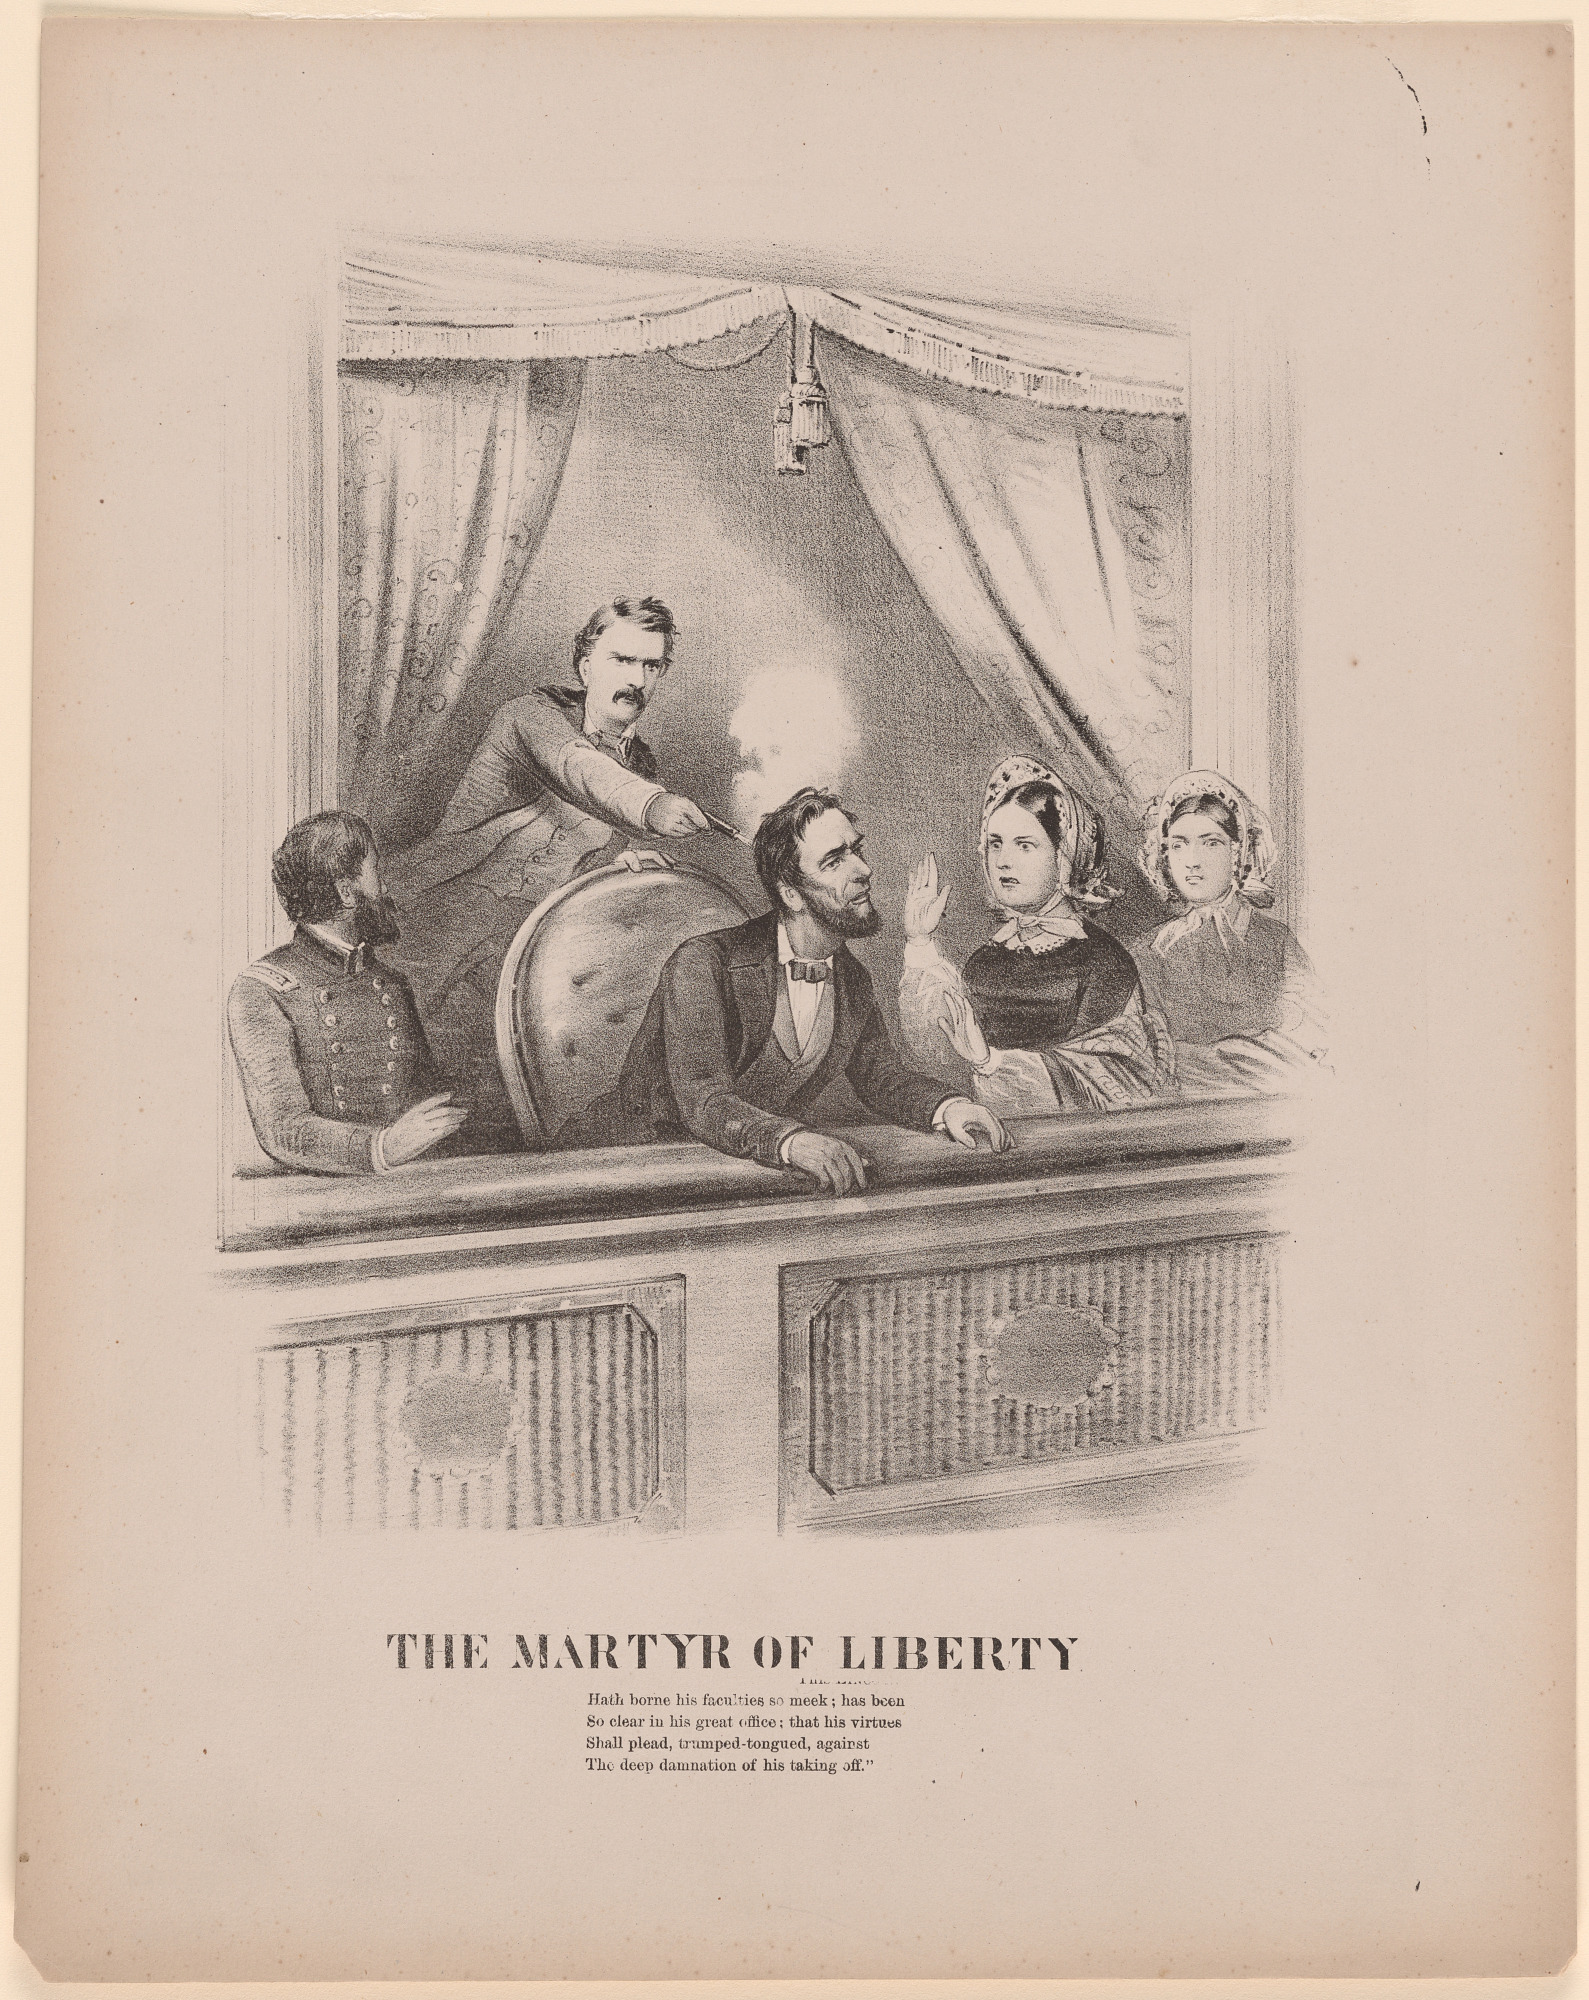 Martyr of Liberty